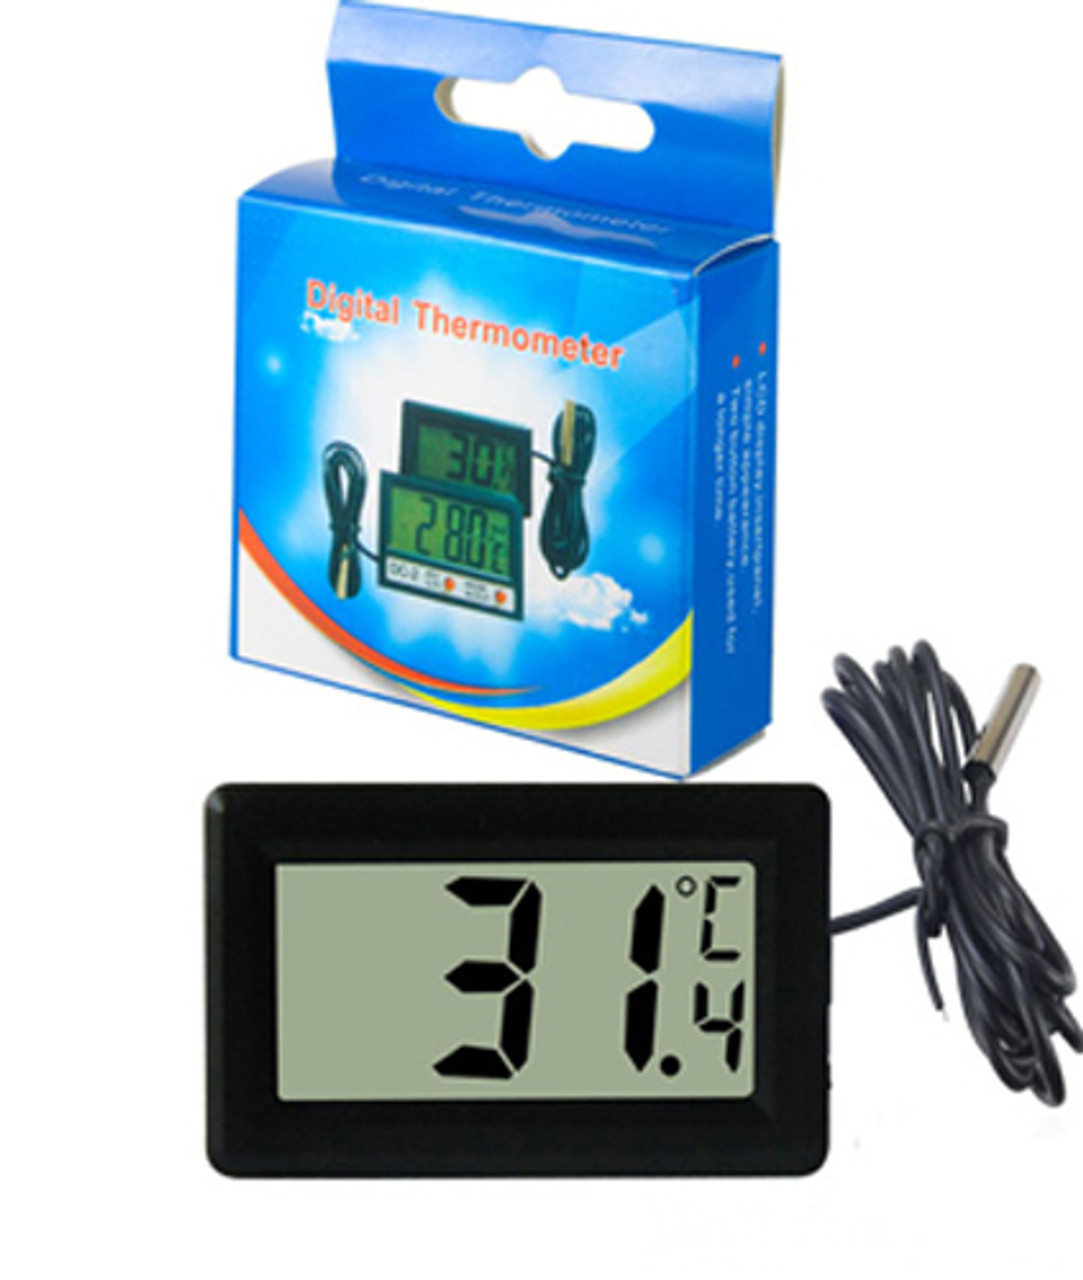 Digital Thermometer (Celsius)